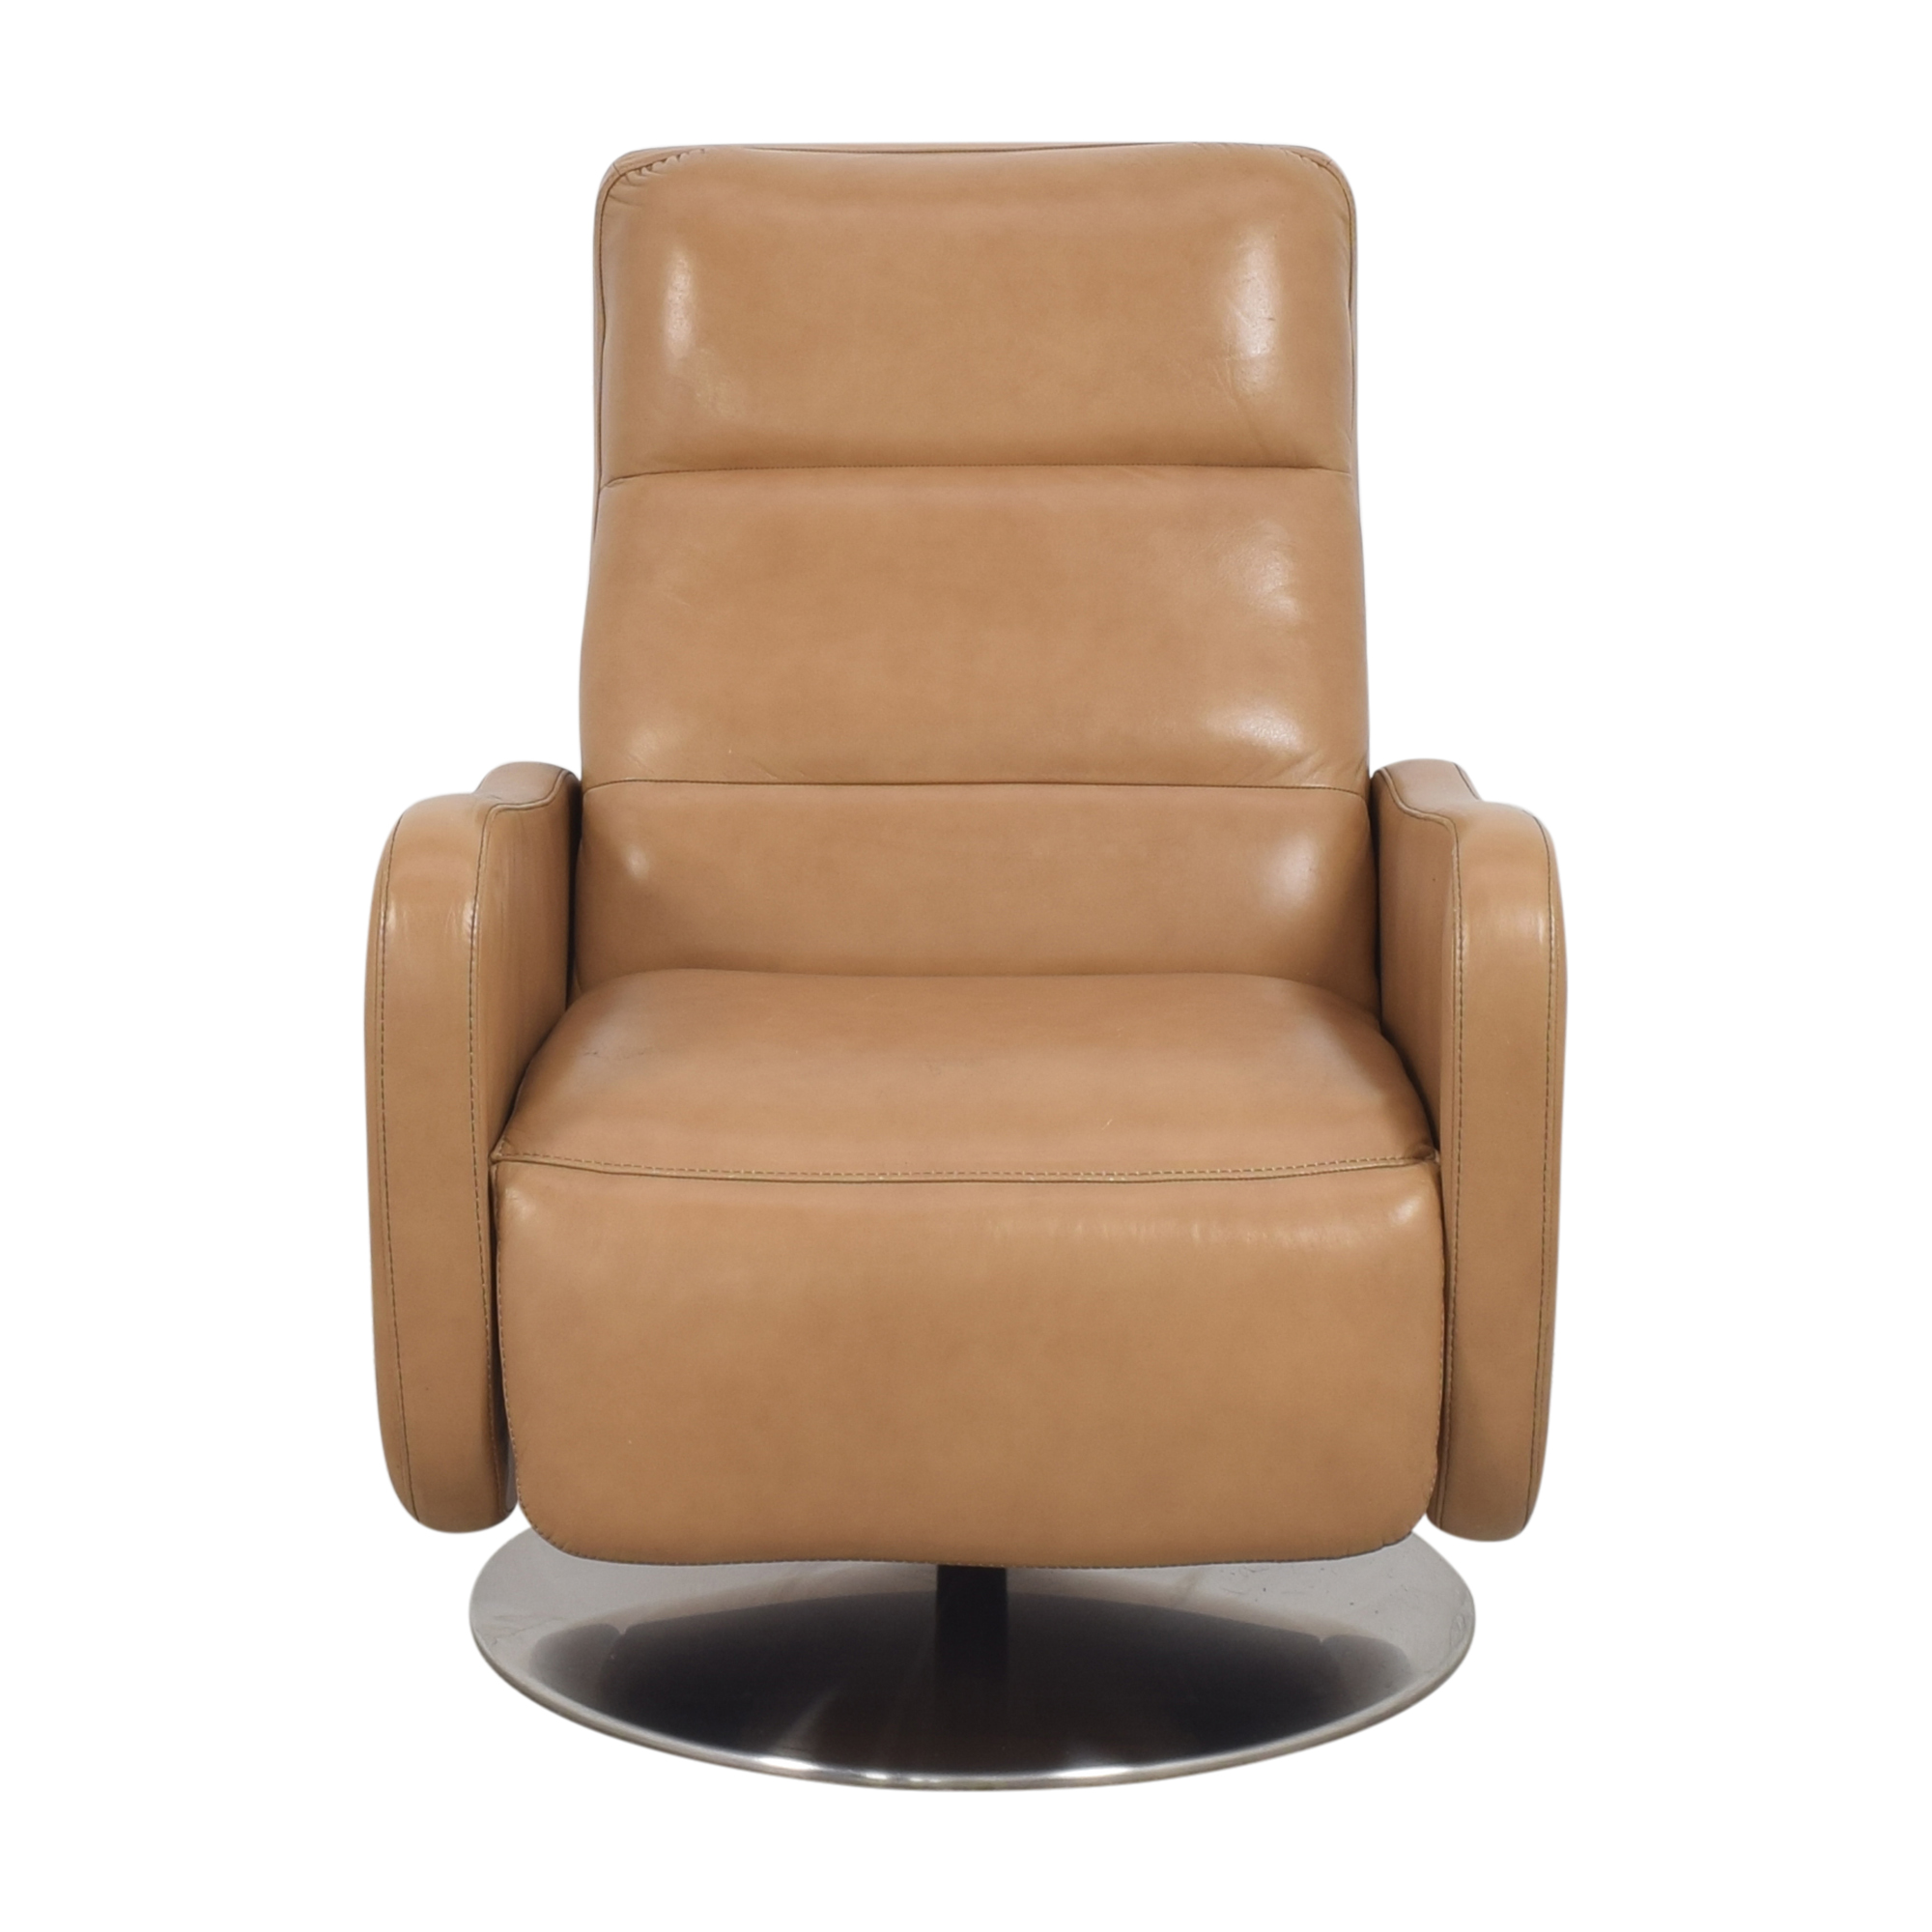 shop Elite Leather Company Elite Leather Company Aries Recliner online